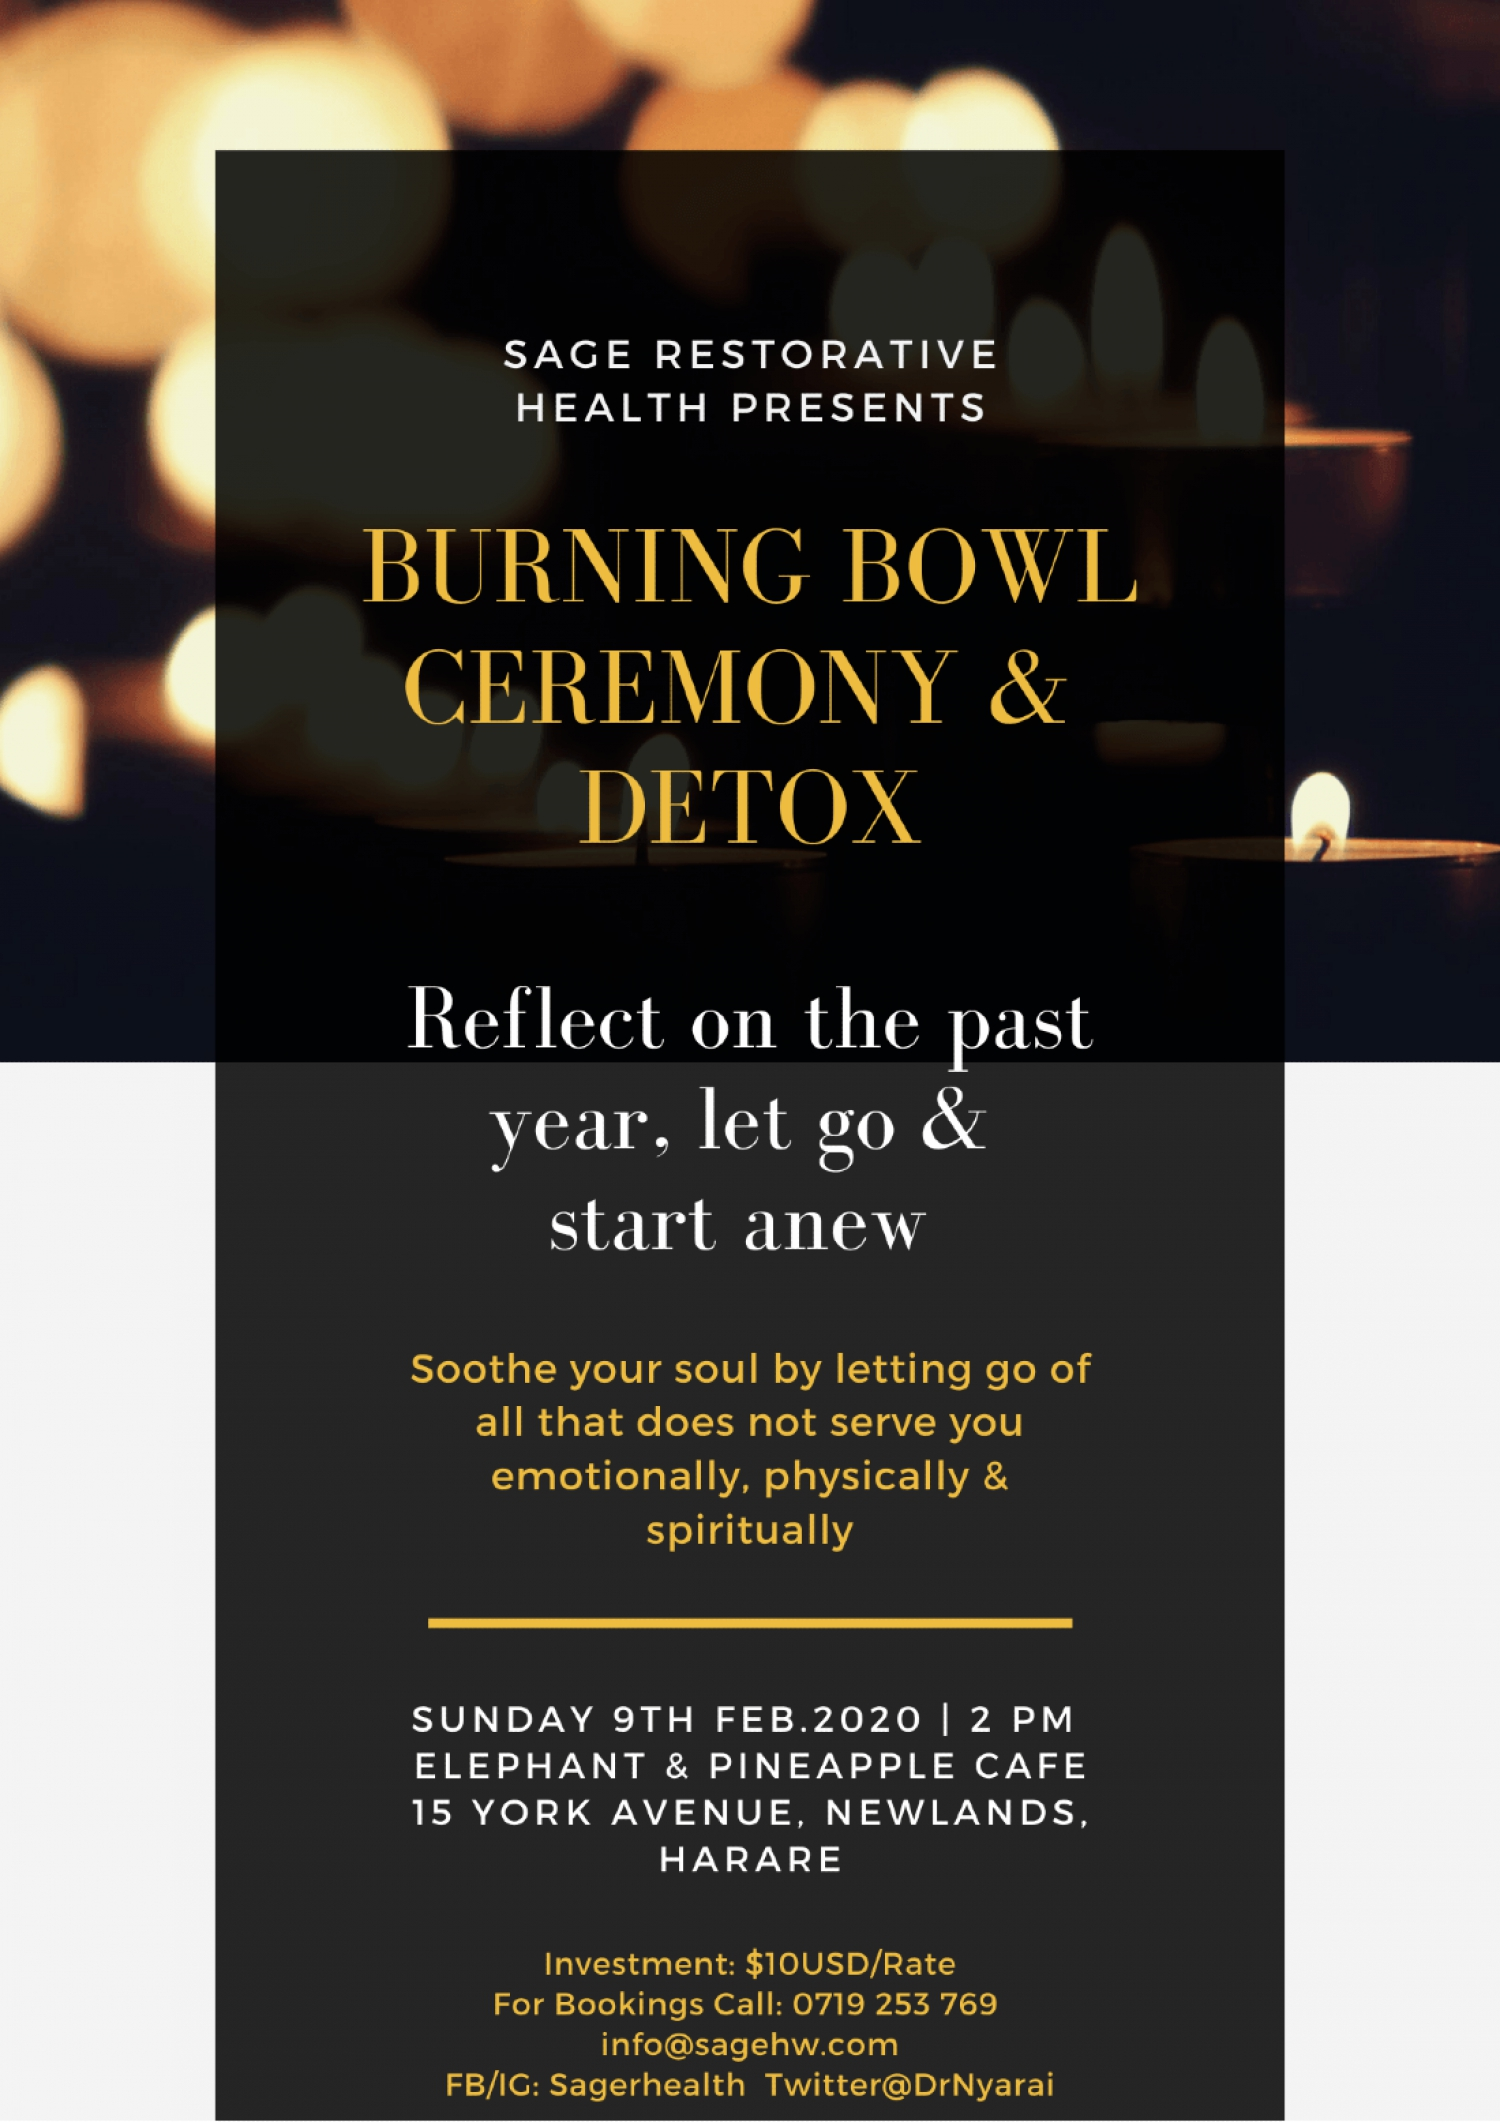 Burning Bowl Ceremony And Detox